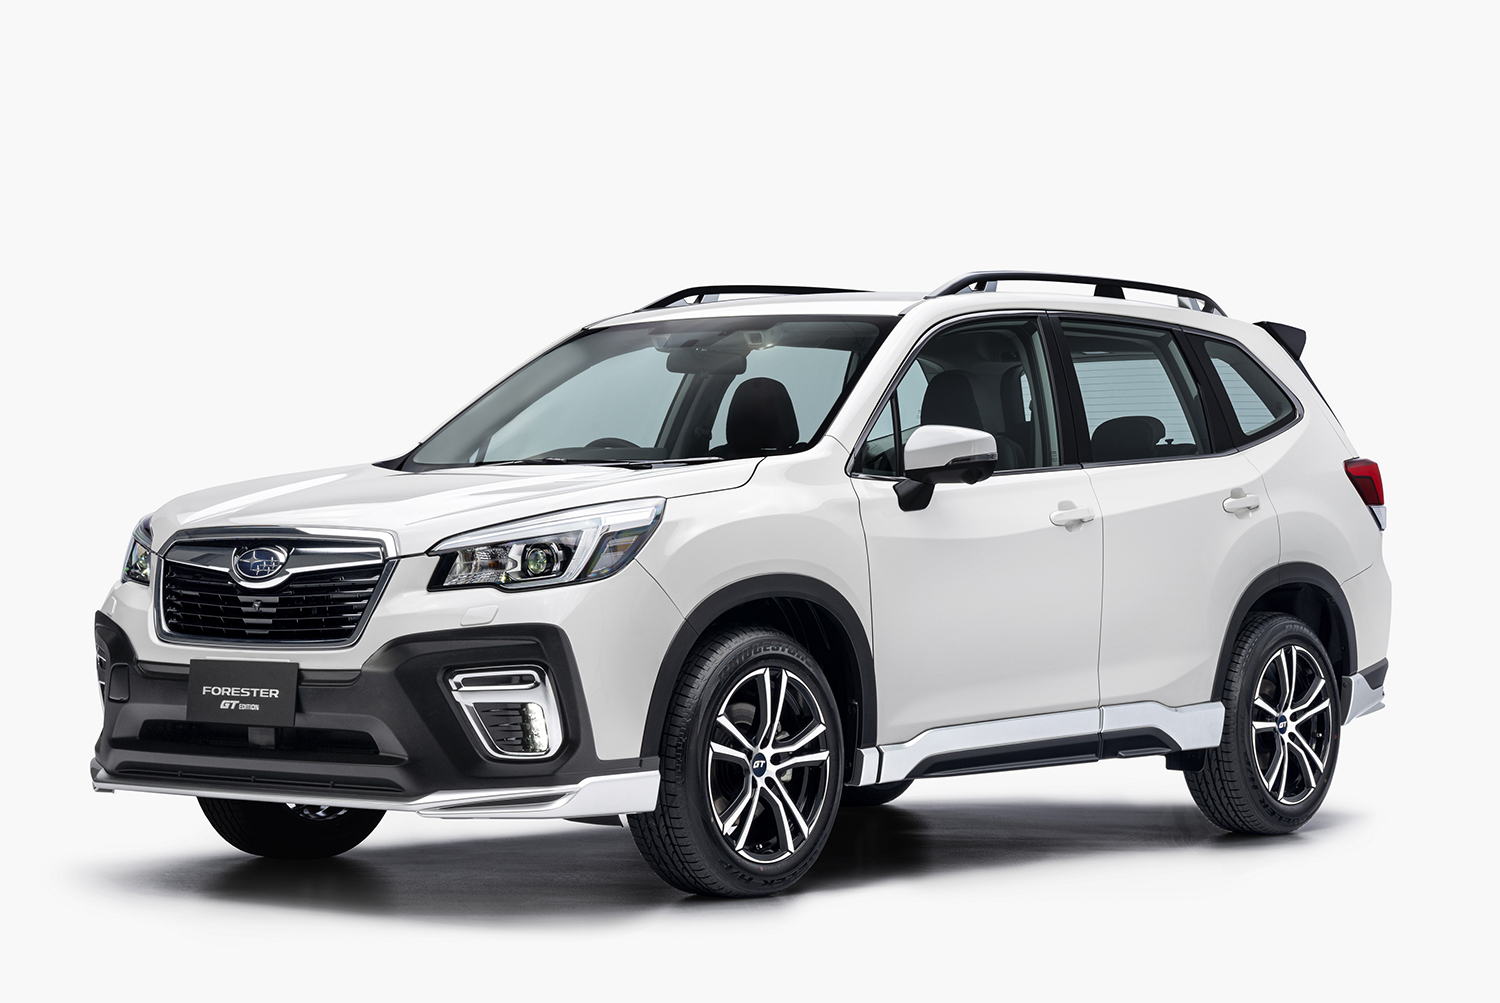 Subaru Forester Gt Edition Previewed In Singapore Arriving In Malaysia Next Year Auto News Carlist My